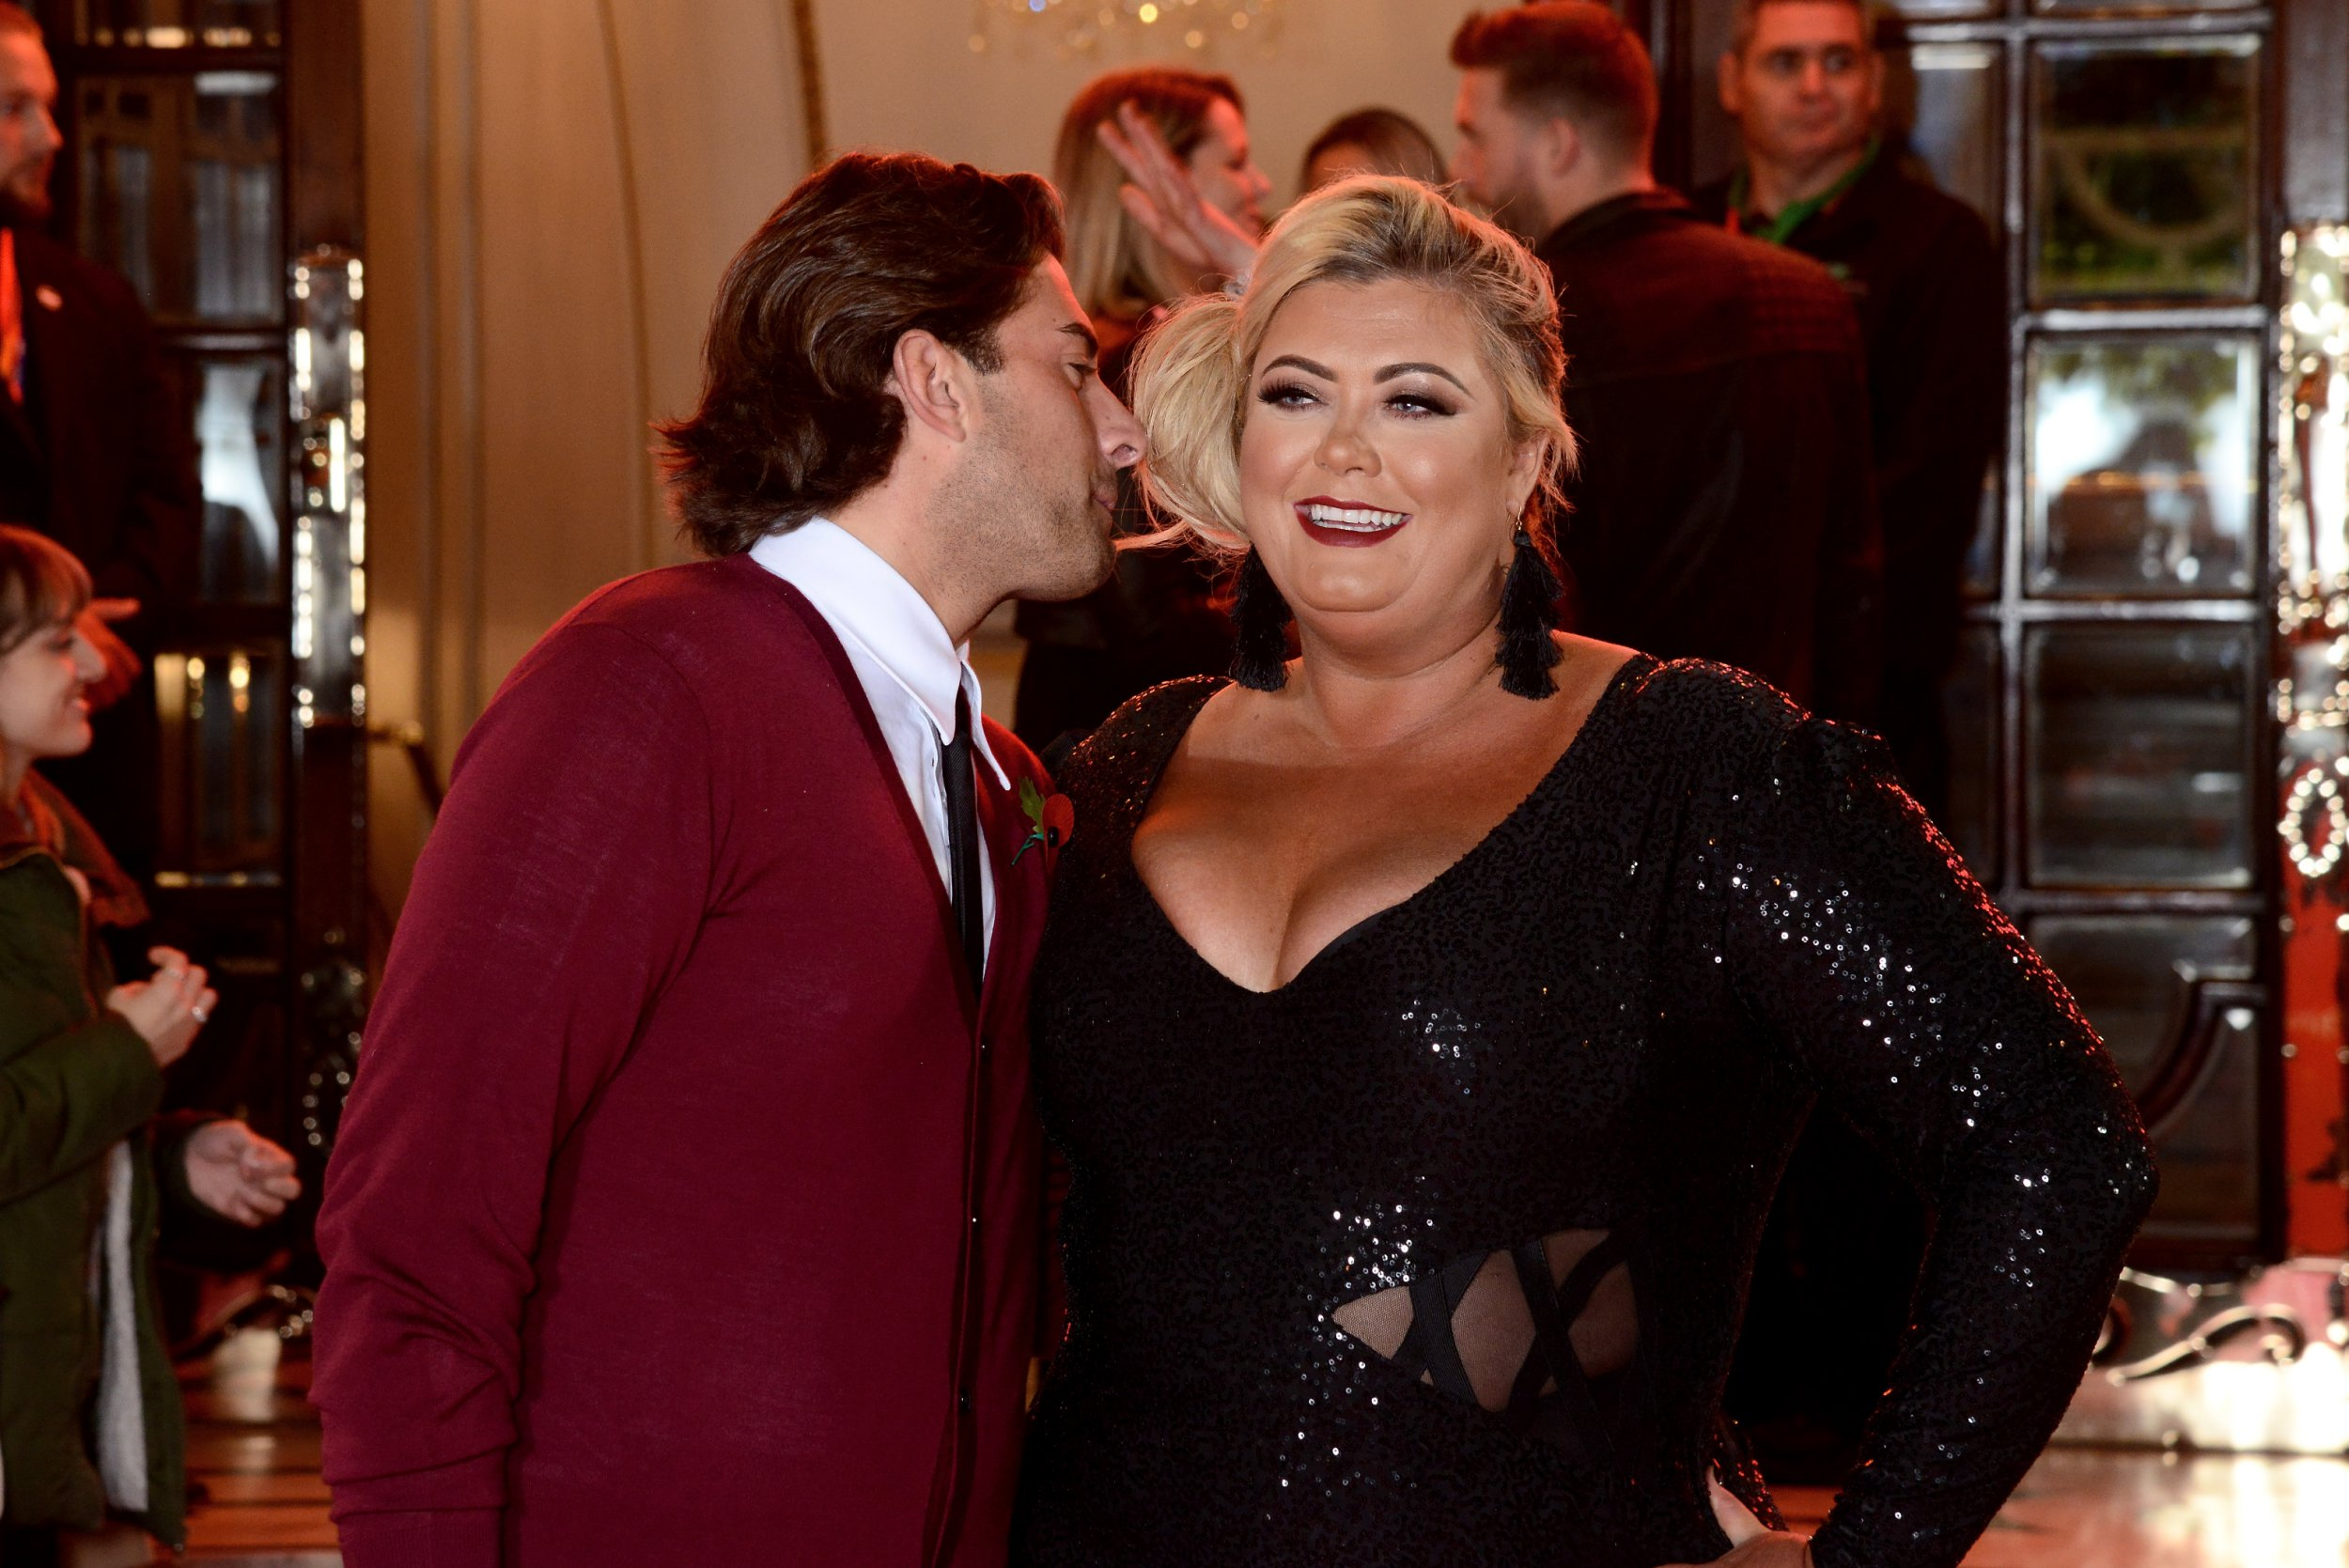 Arg pours his heart out to Gemma Collins and says he doesn't care what people think